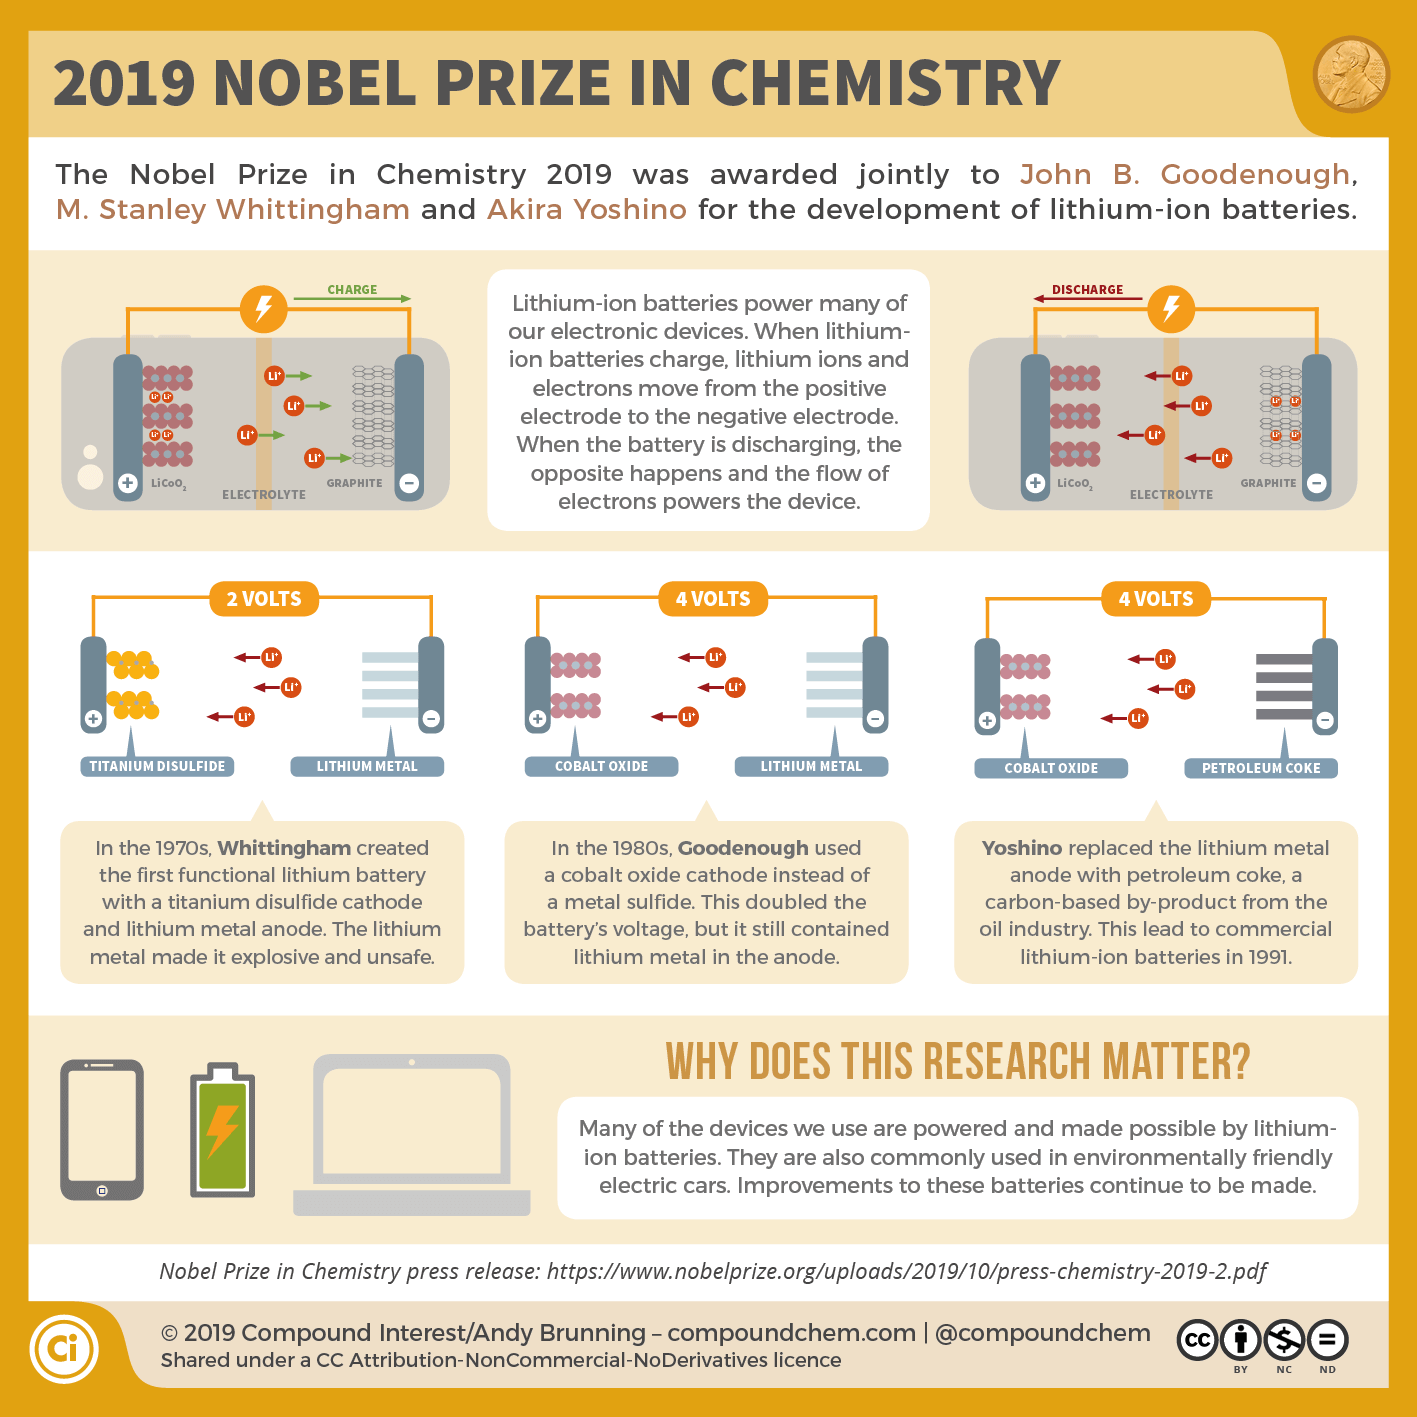 The 2019 Nobel Prize in Chemistry: The batteries that power our phones and laptops